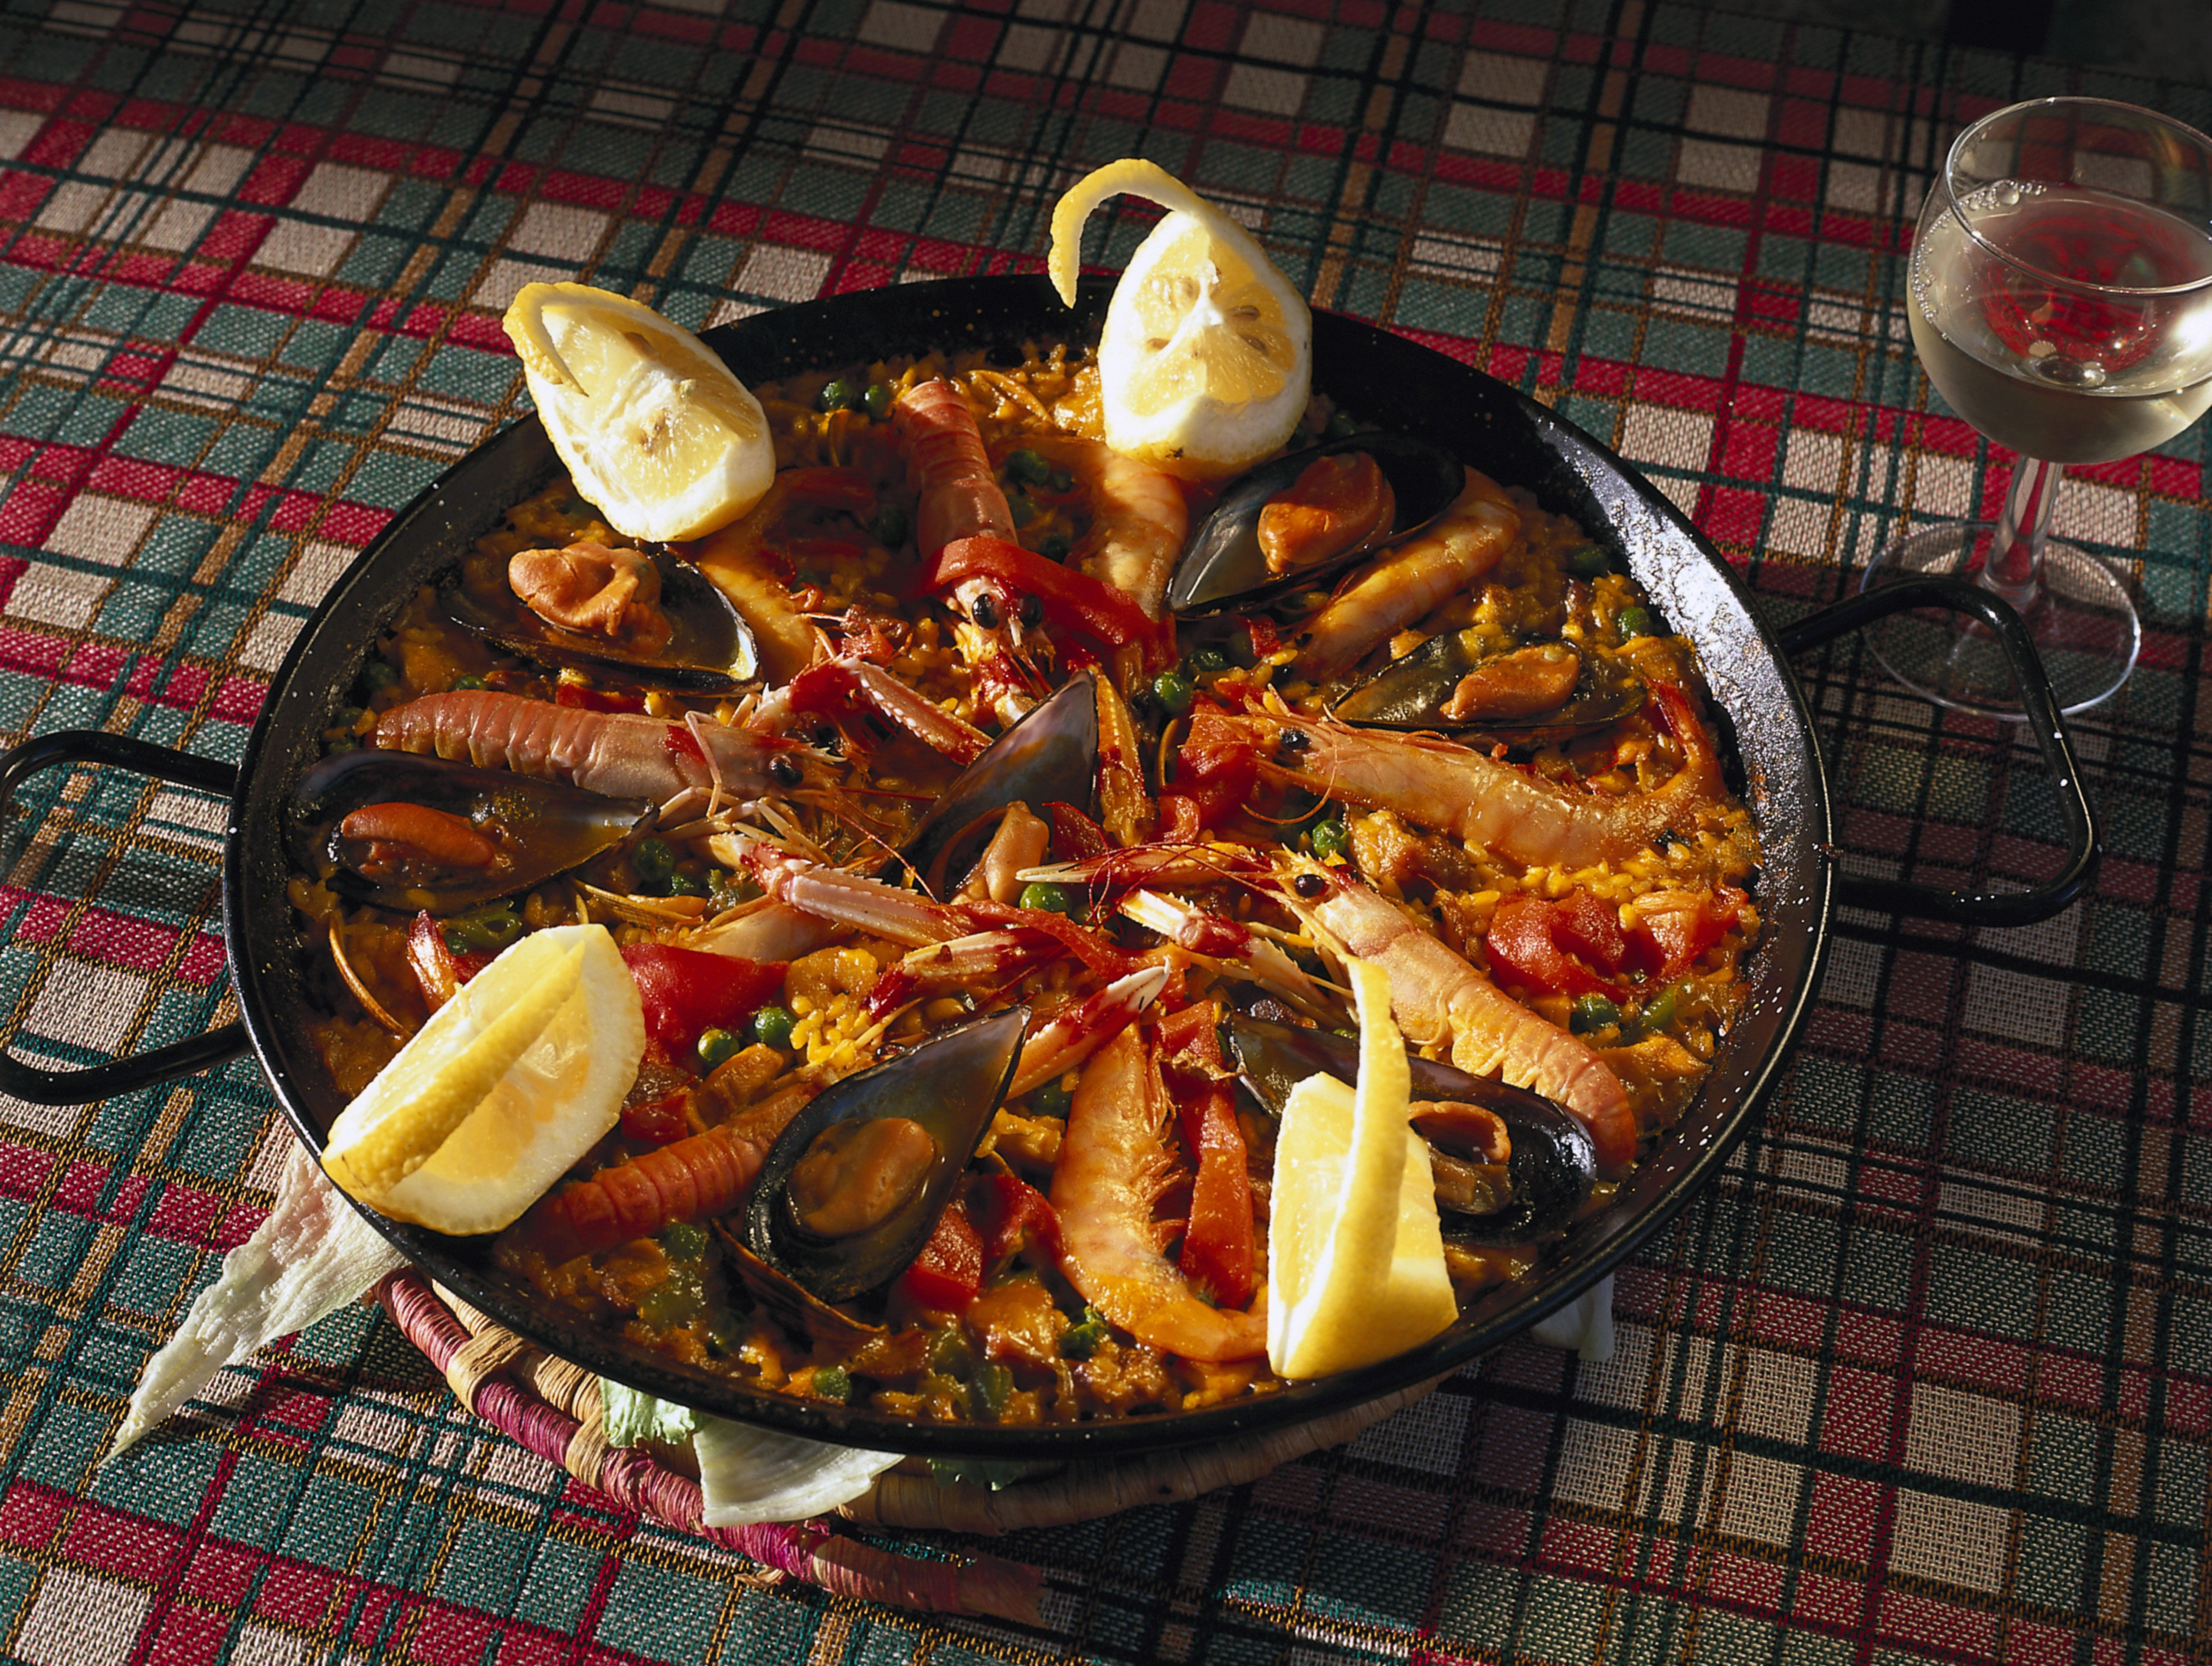 Top 10 Spanish Dishes To Try While In Spain